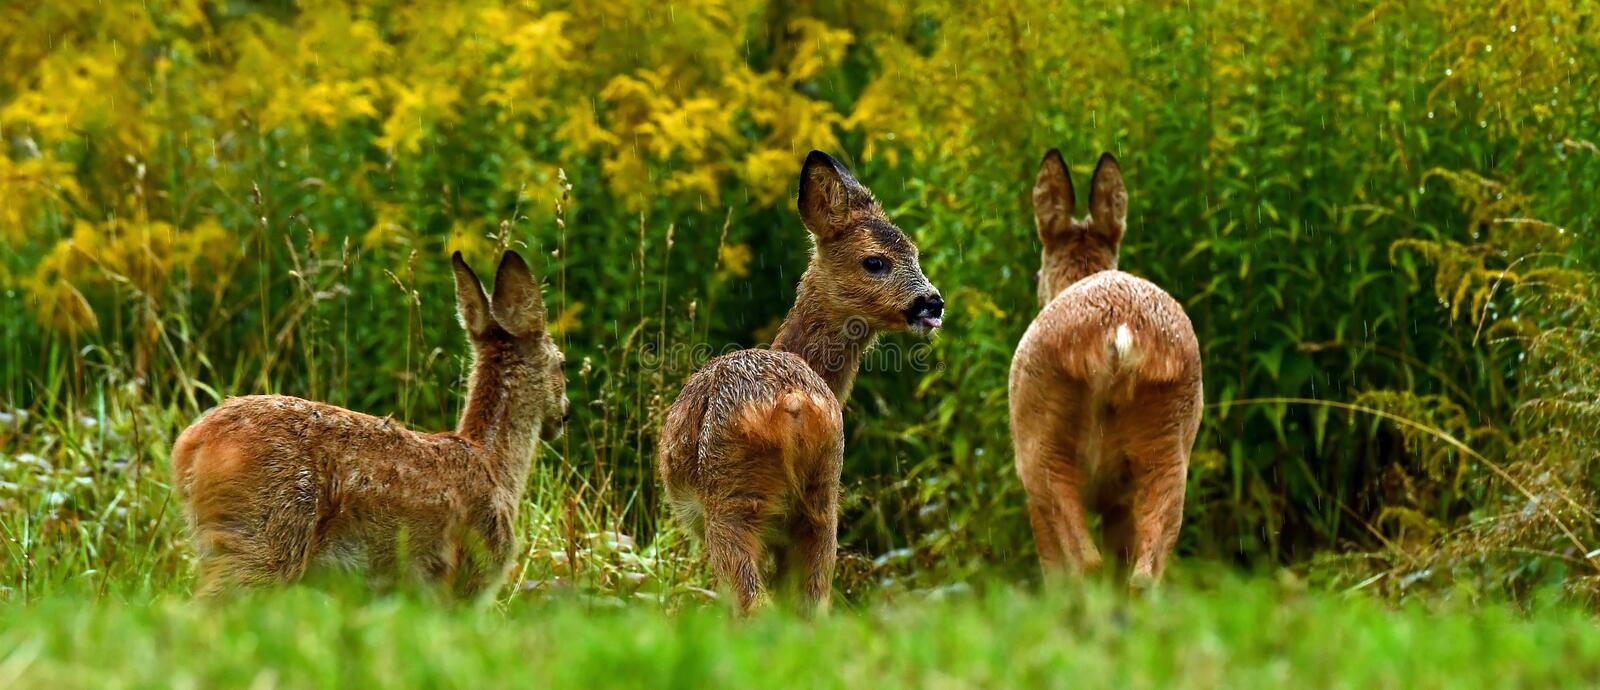 Eight weeks young wild Roe deer, Capreolus capreolus stock photography